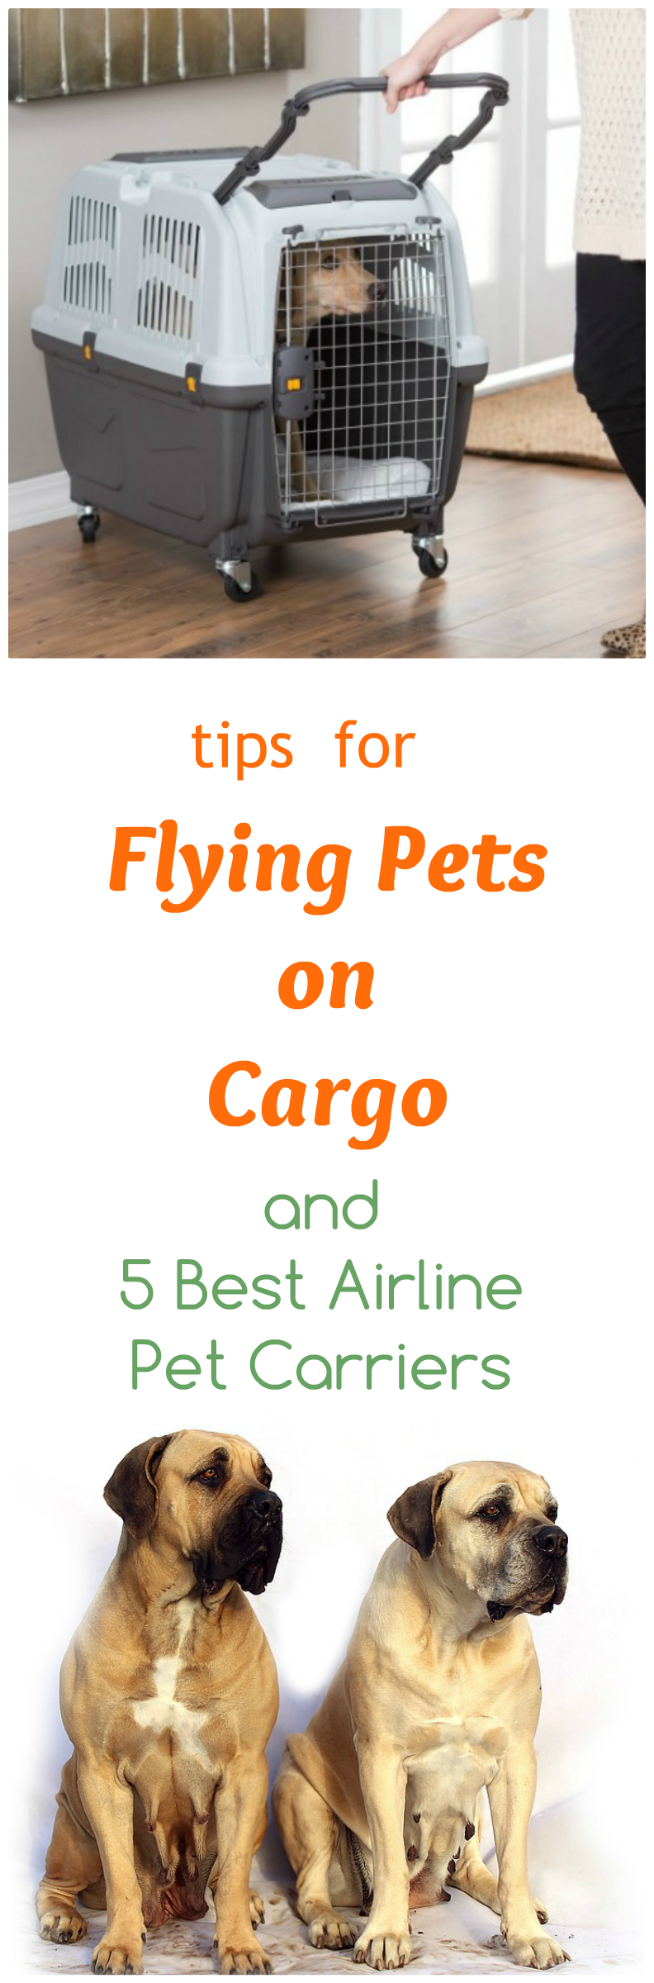 5 Best Pet Carriers And Tips For Safer Airline Cargo Flights